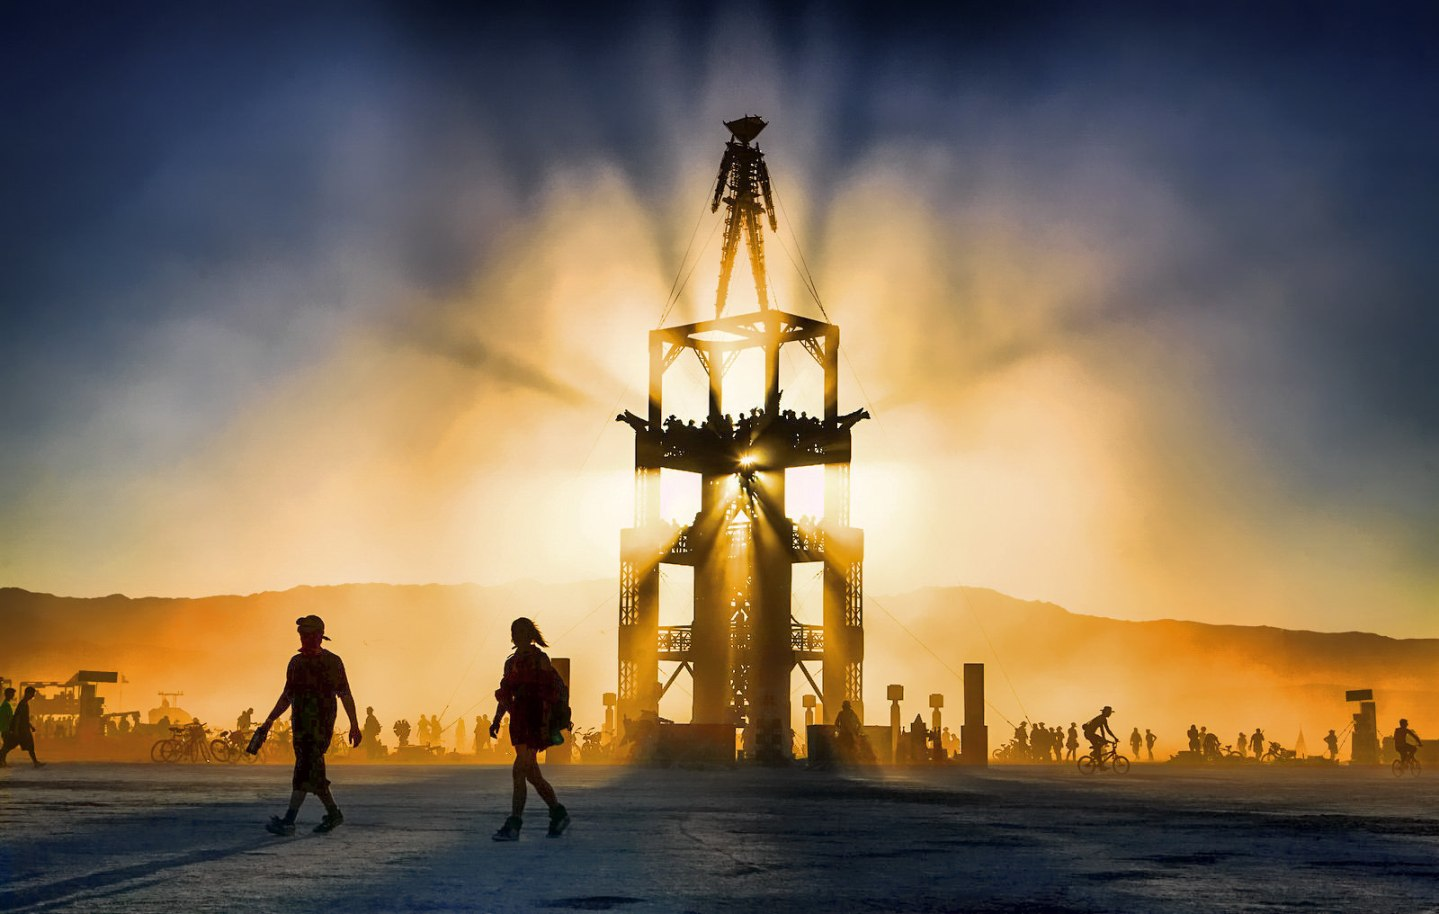 The Man - Burning Man 2014